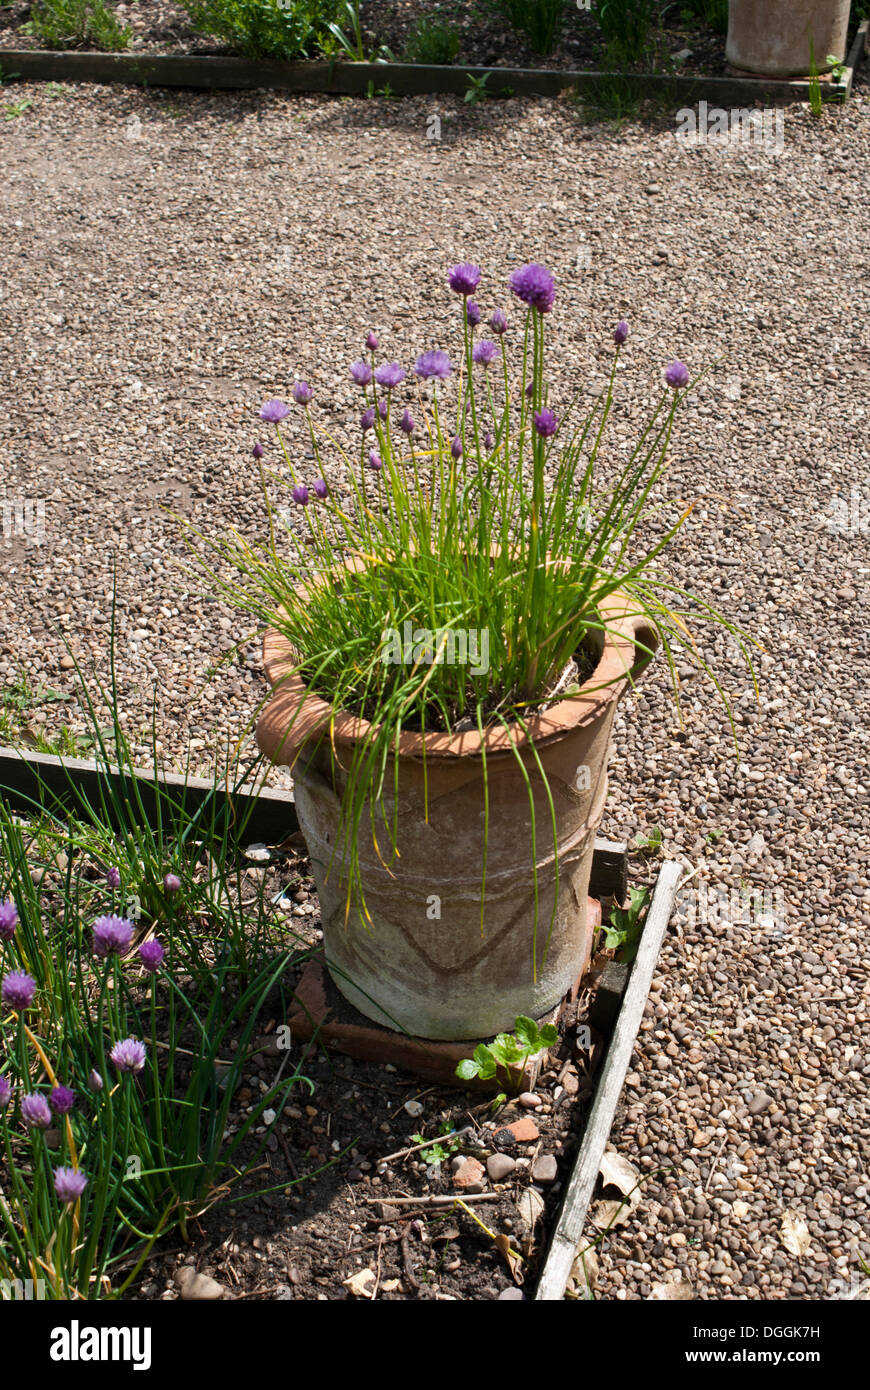 how to grow garlic chives in a pot